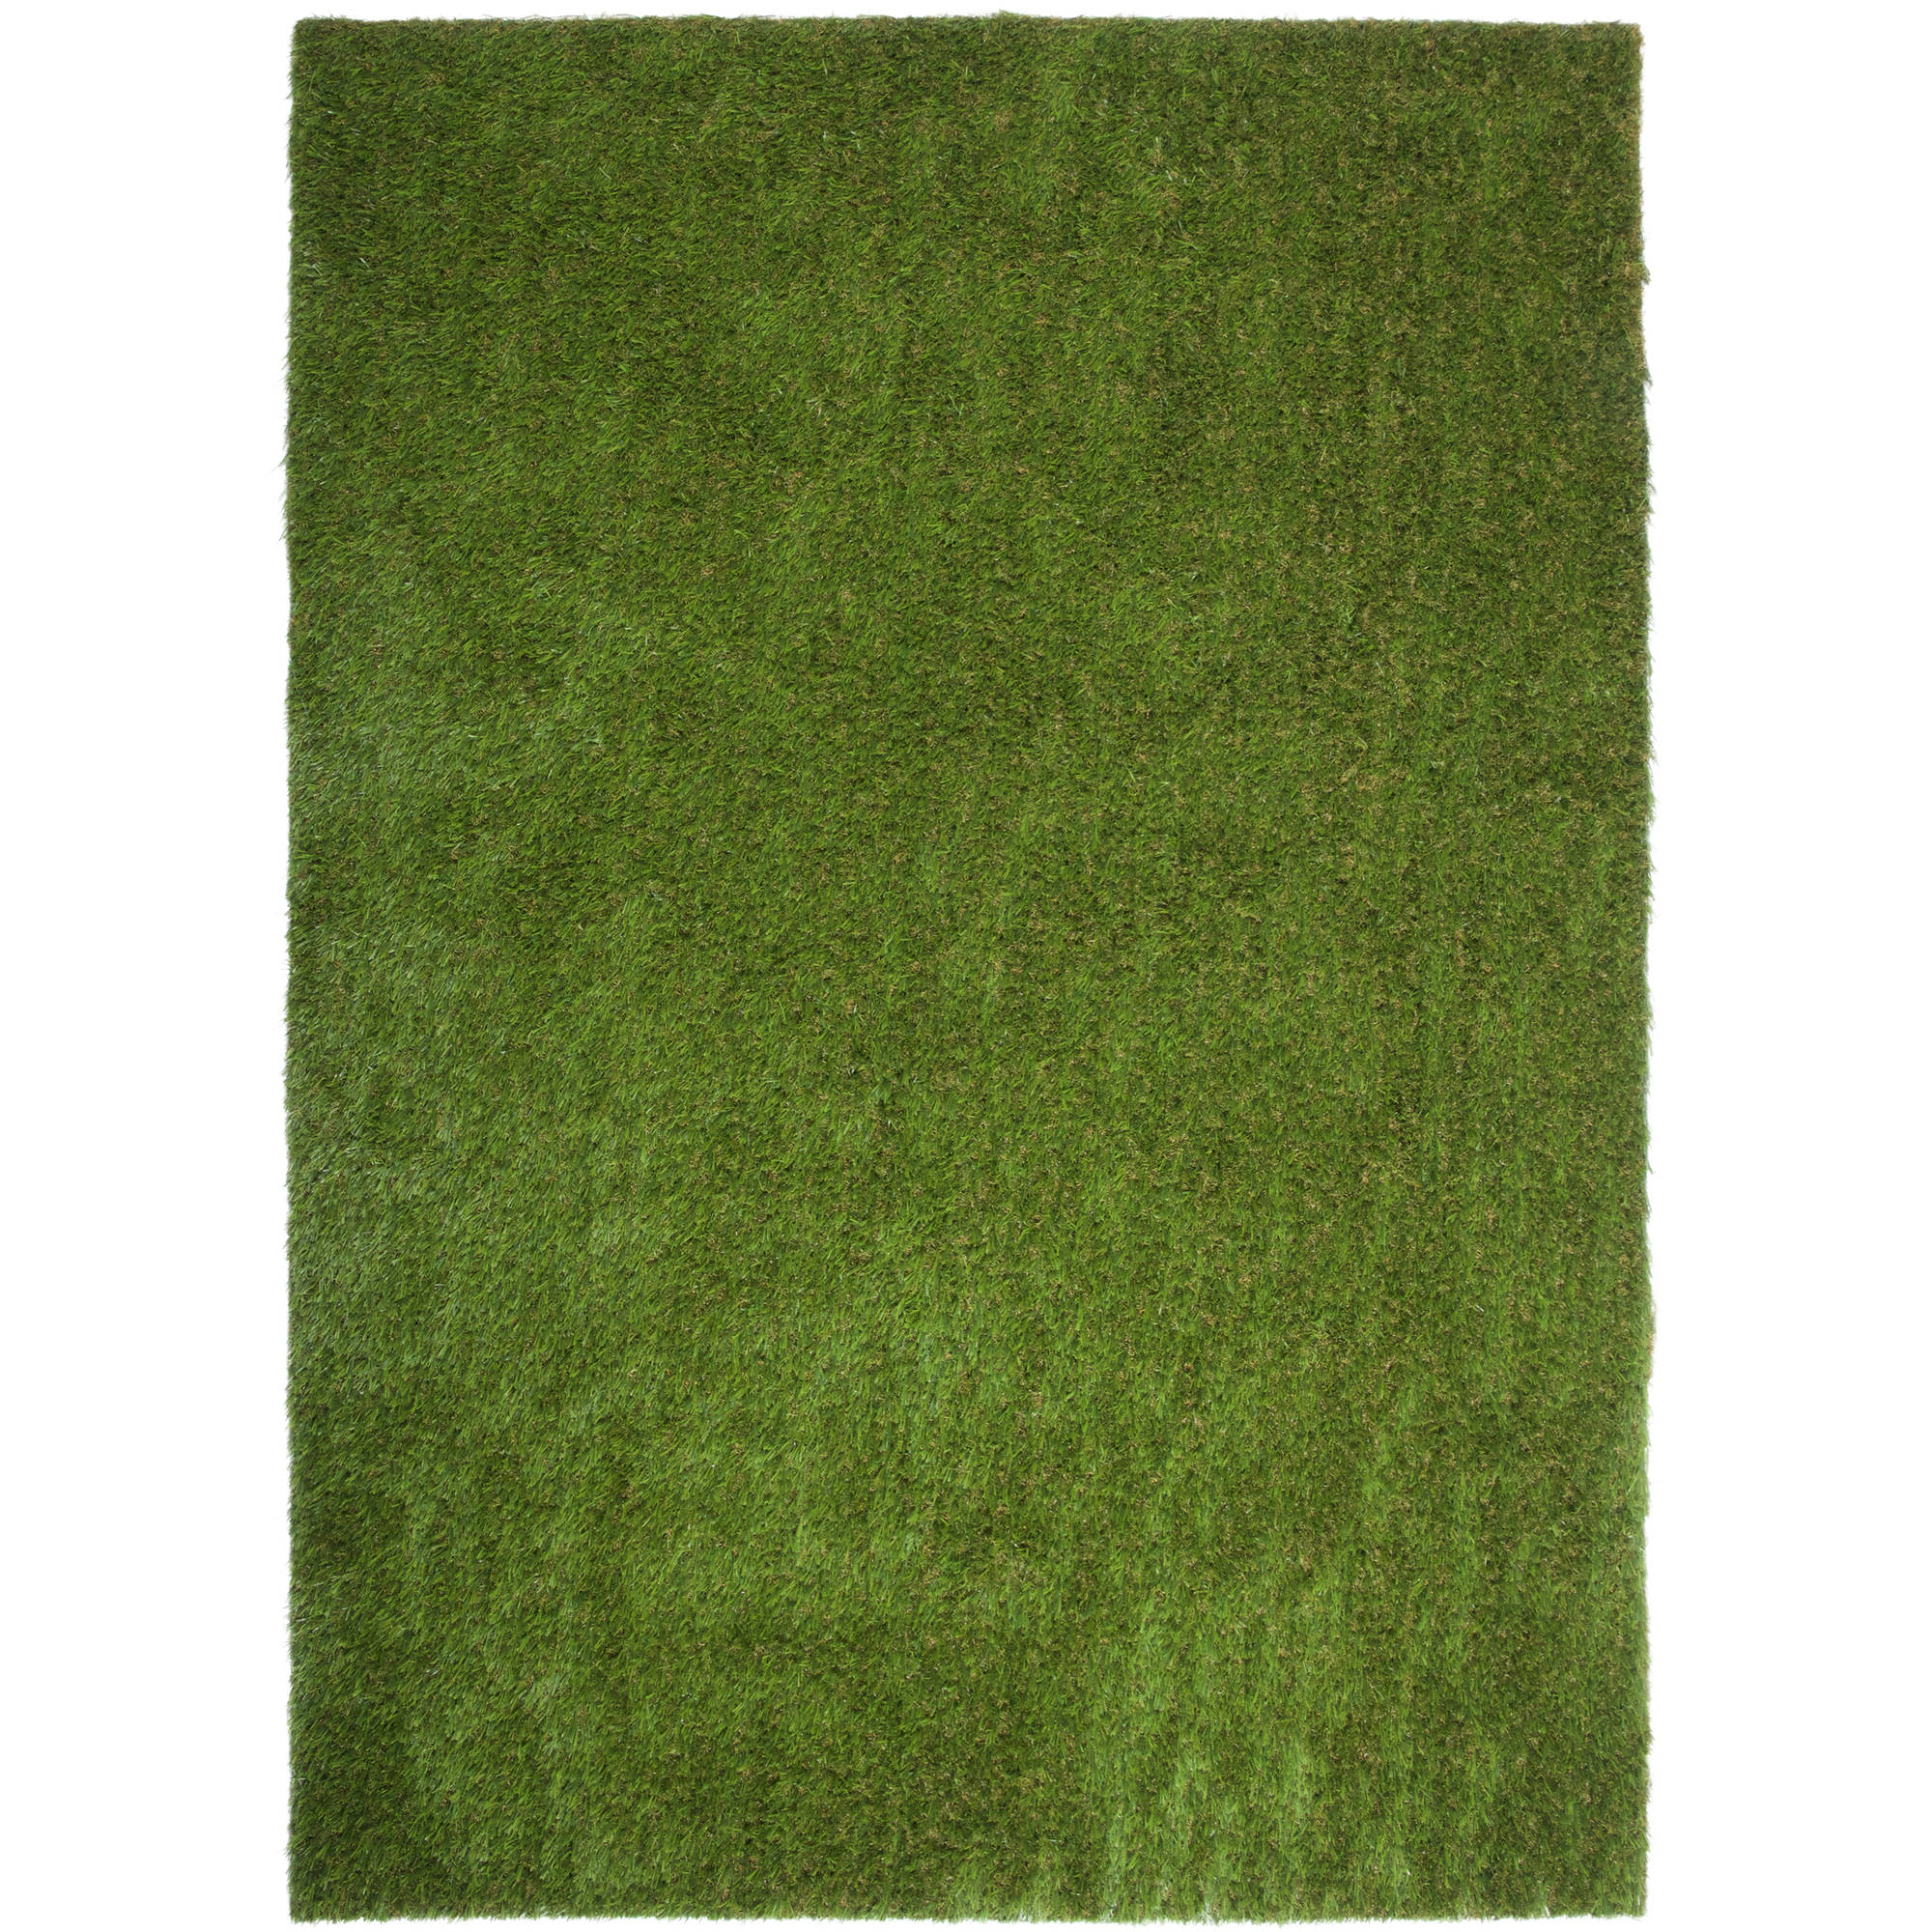 7' x 10' Multi-Use Artificial Grass